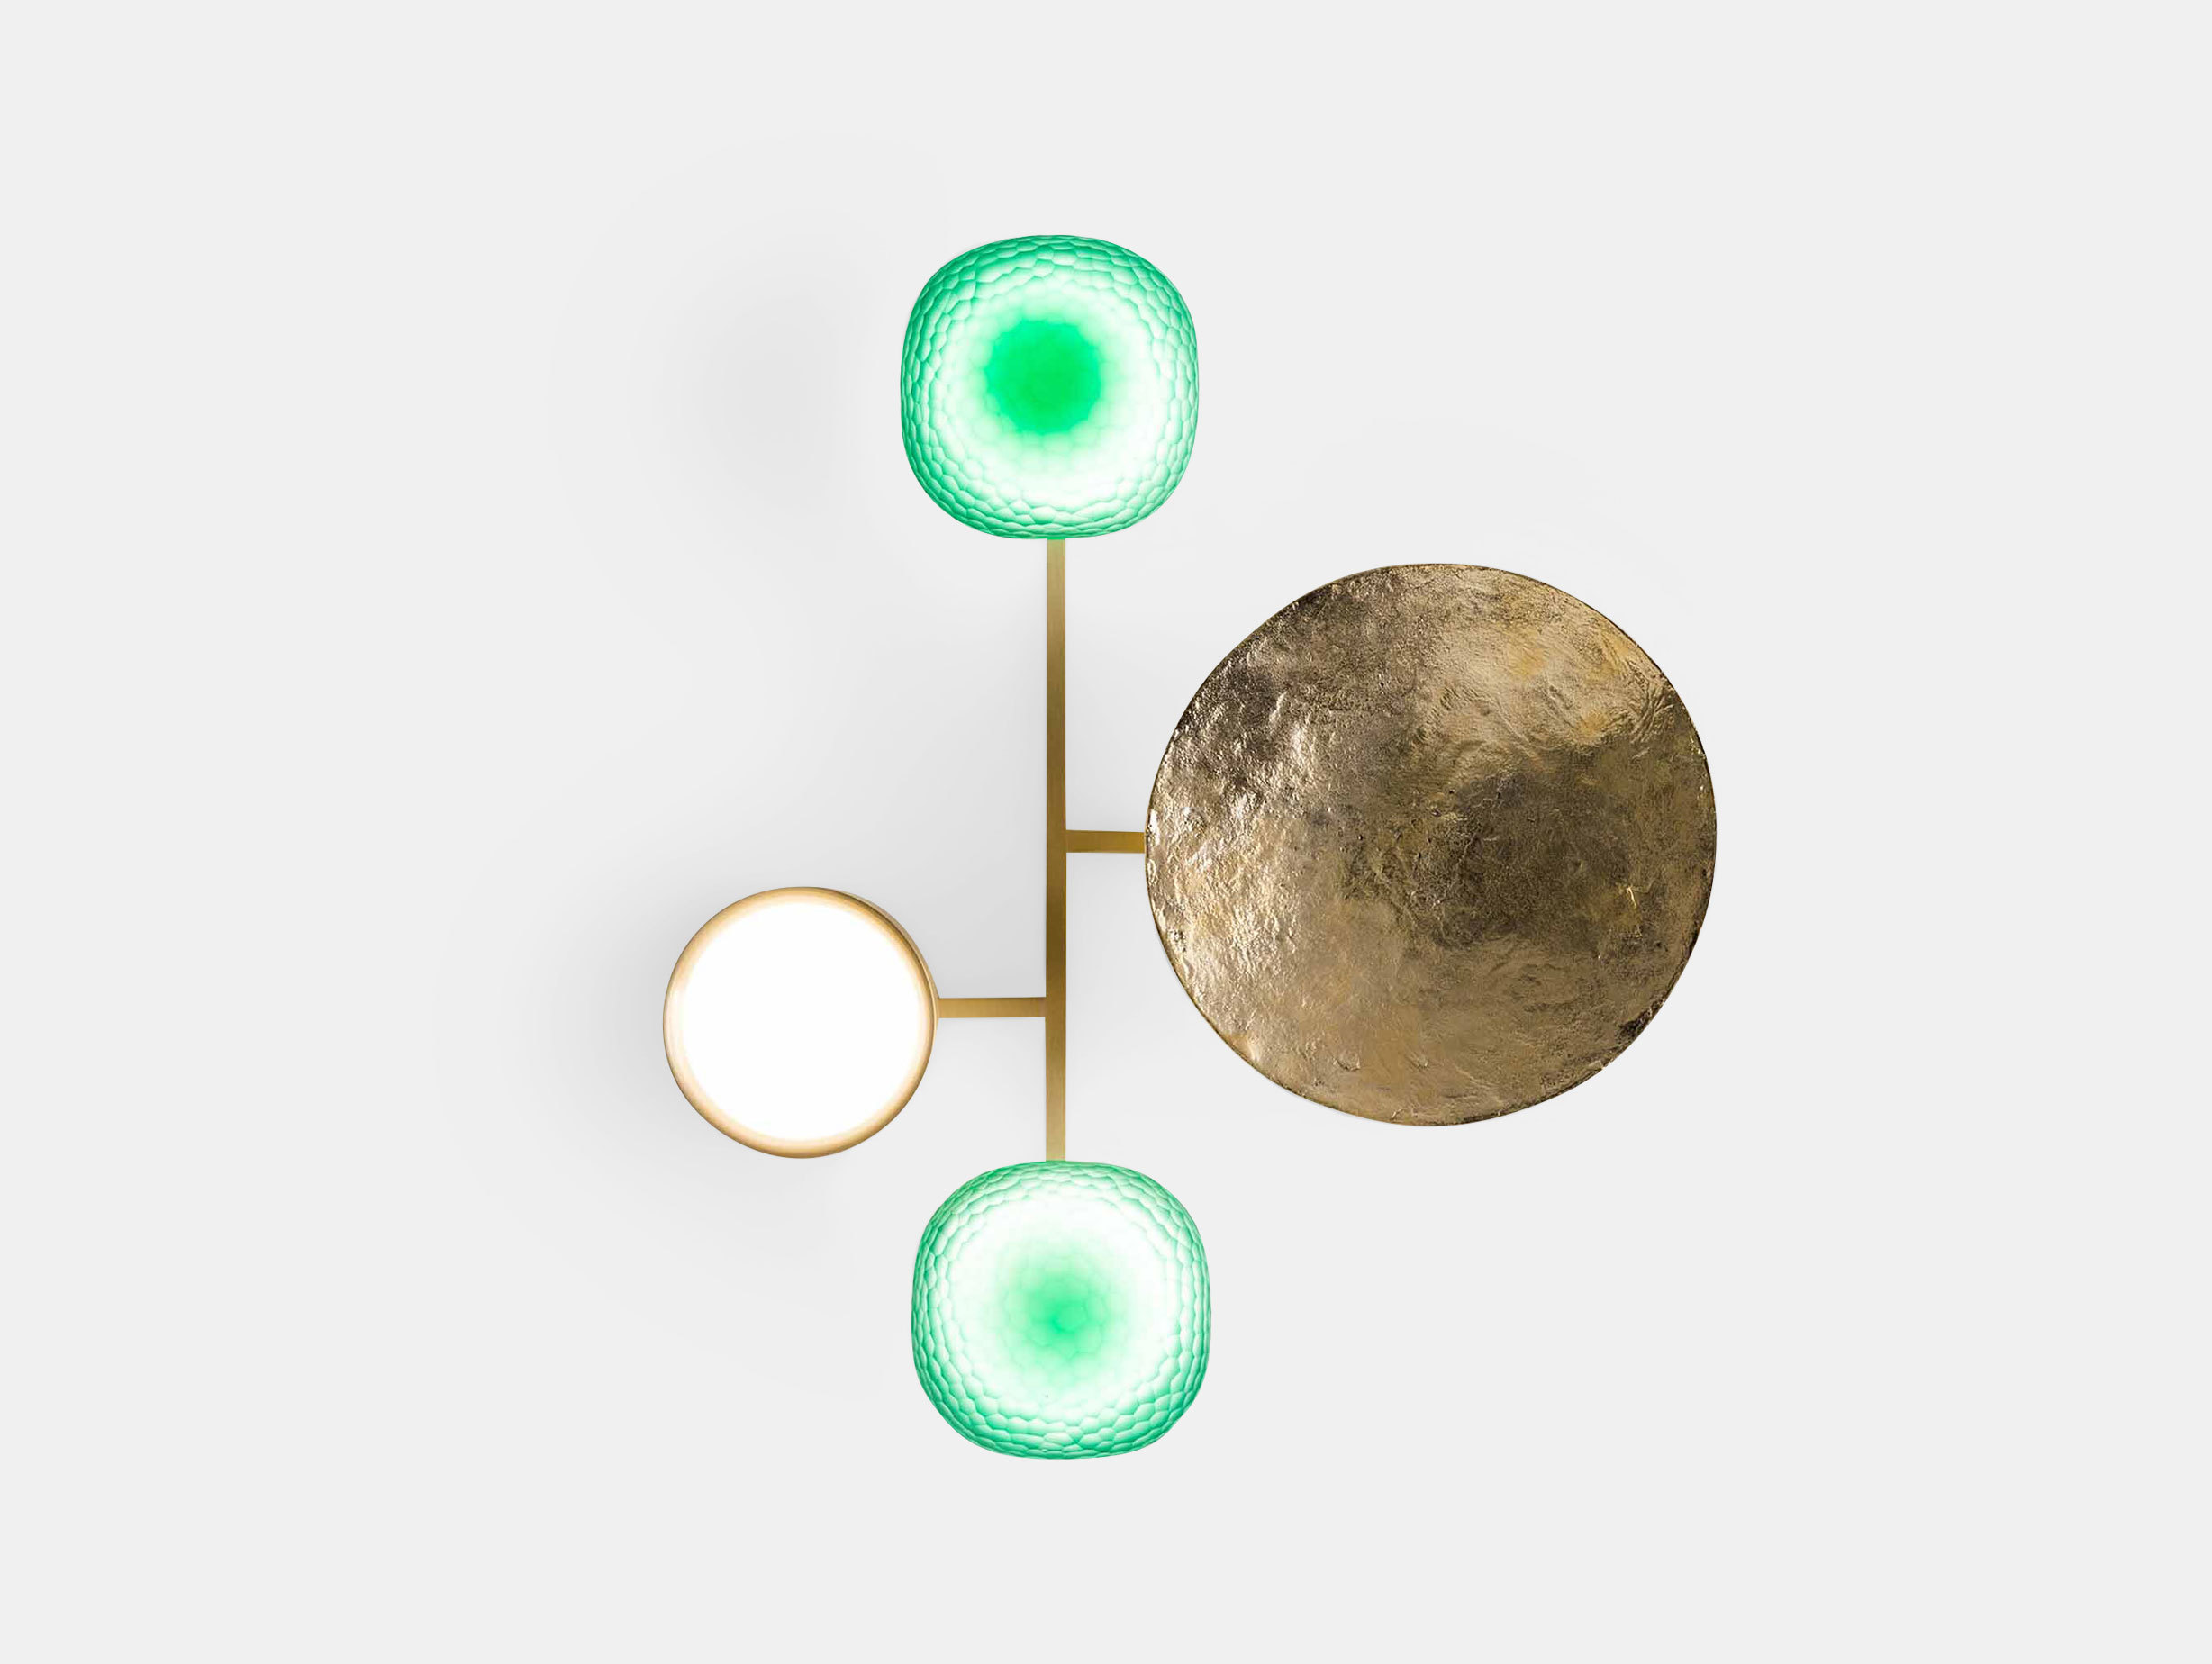 Giopato And Coombes Gioielli 06 Wall Light